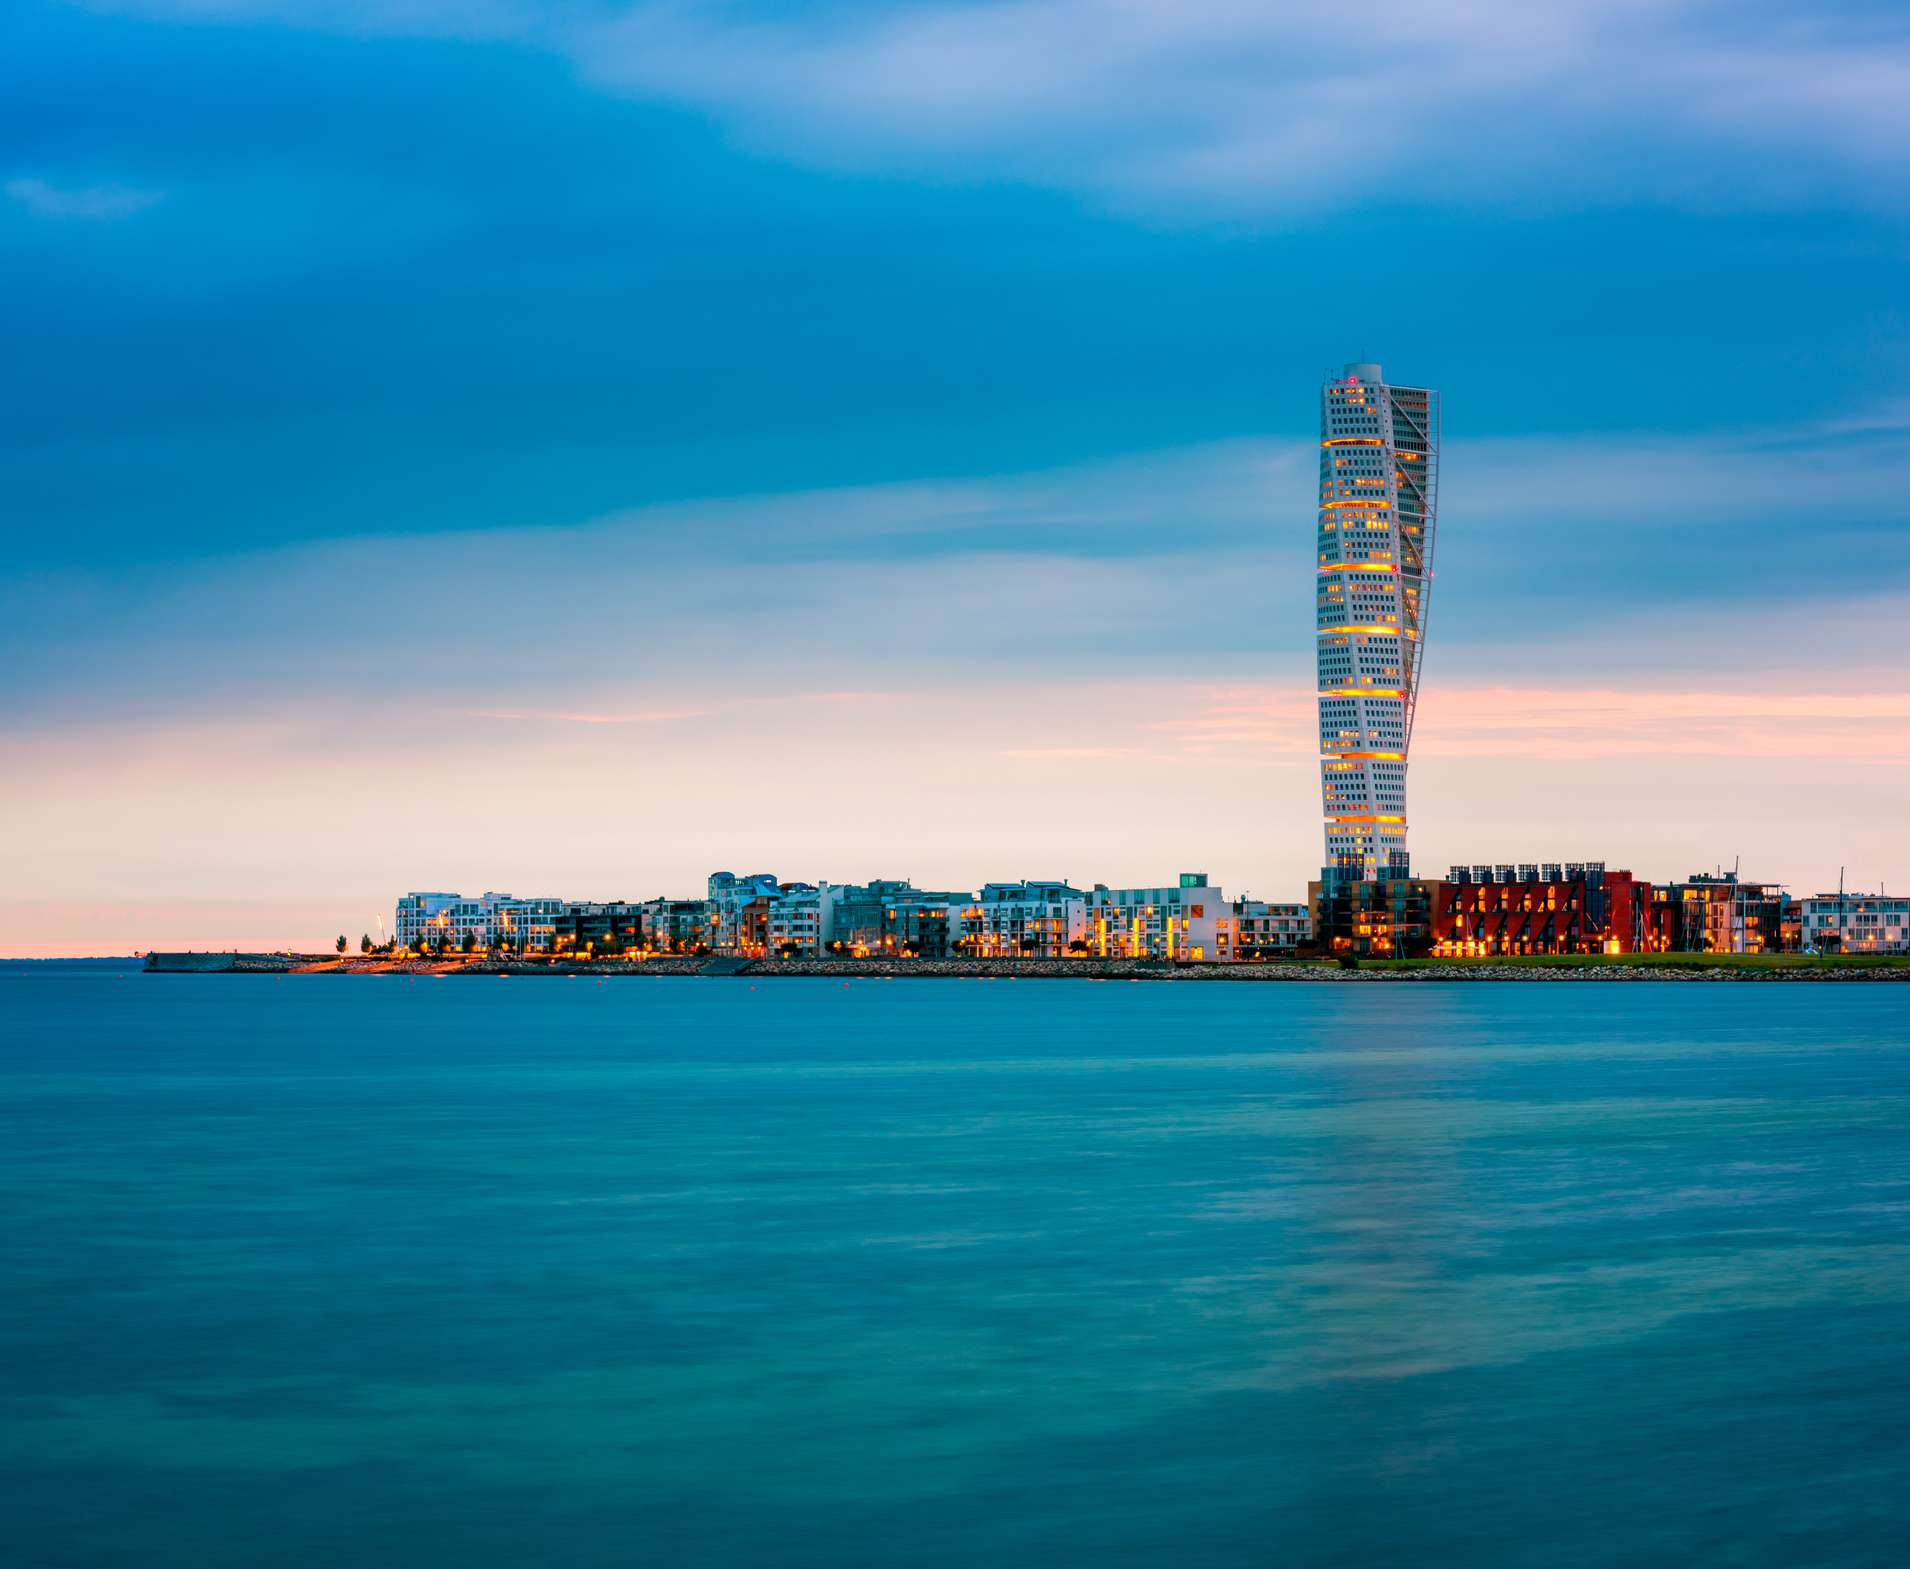 Skyline of Malmo, Sweden with the Turning Torso Building